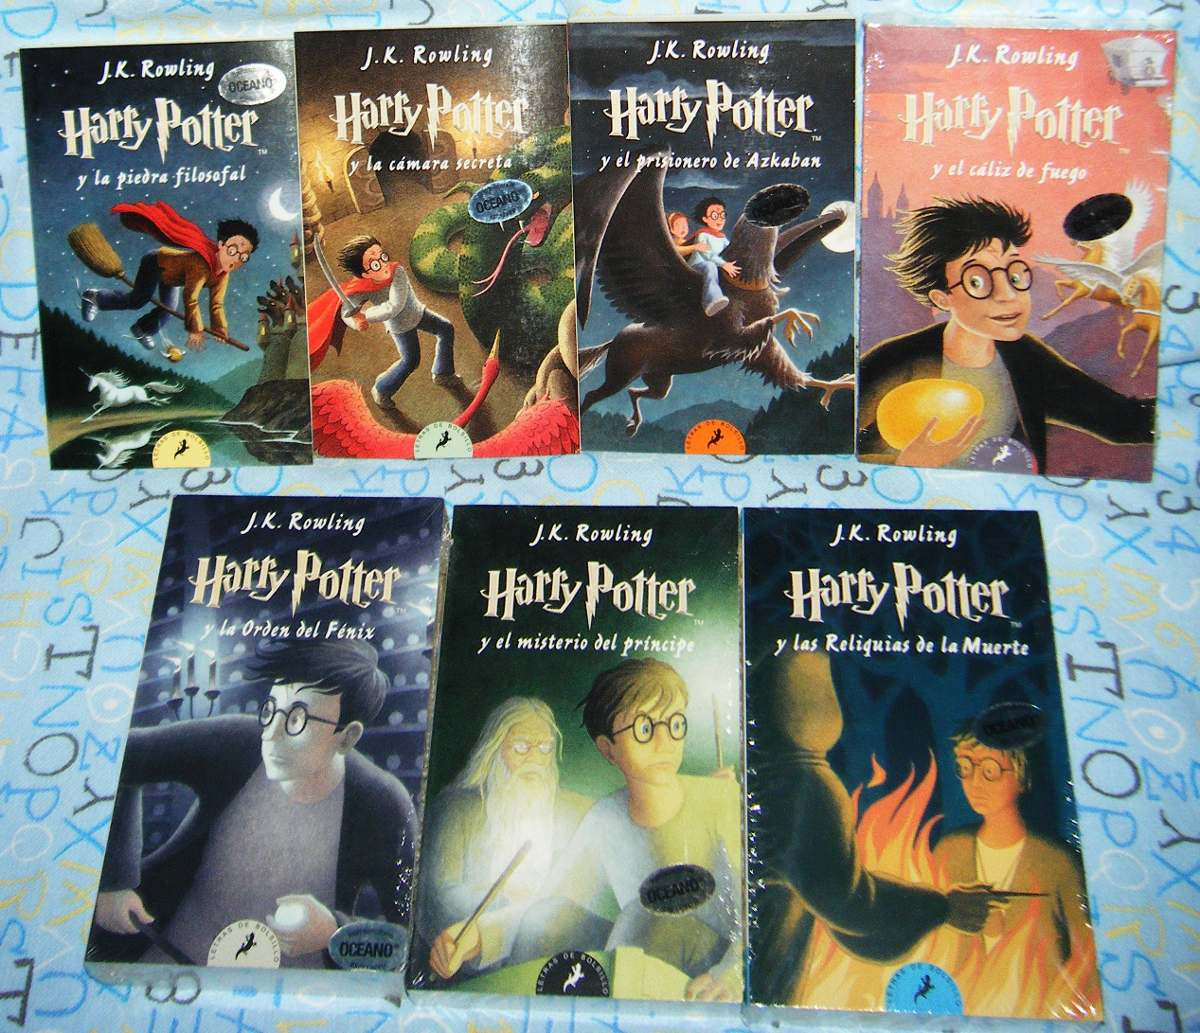 Harry Potter Libros Pdf Libros De Harry Potter Libro De Hechizos De Harry Potter